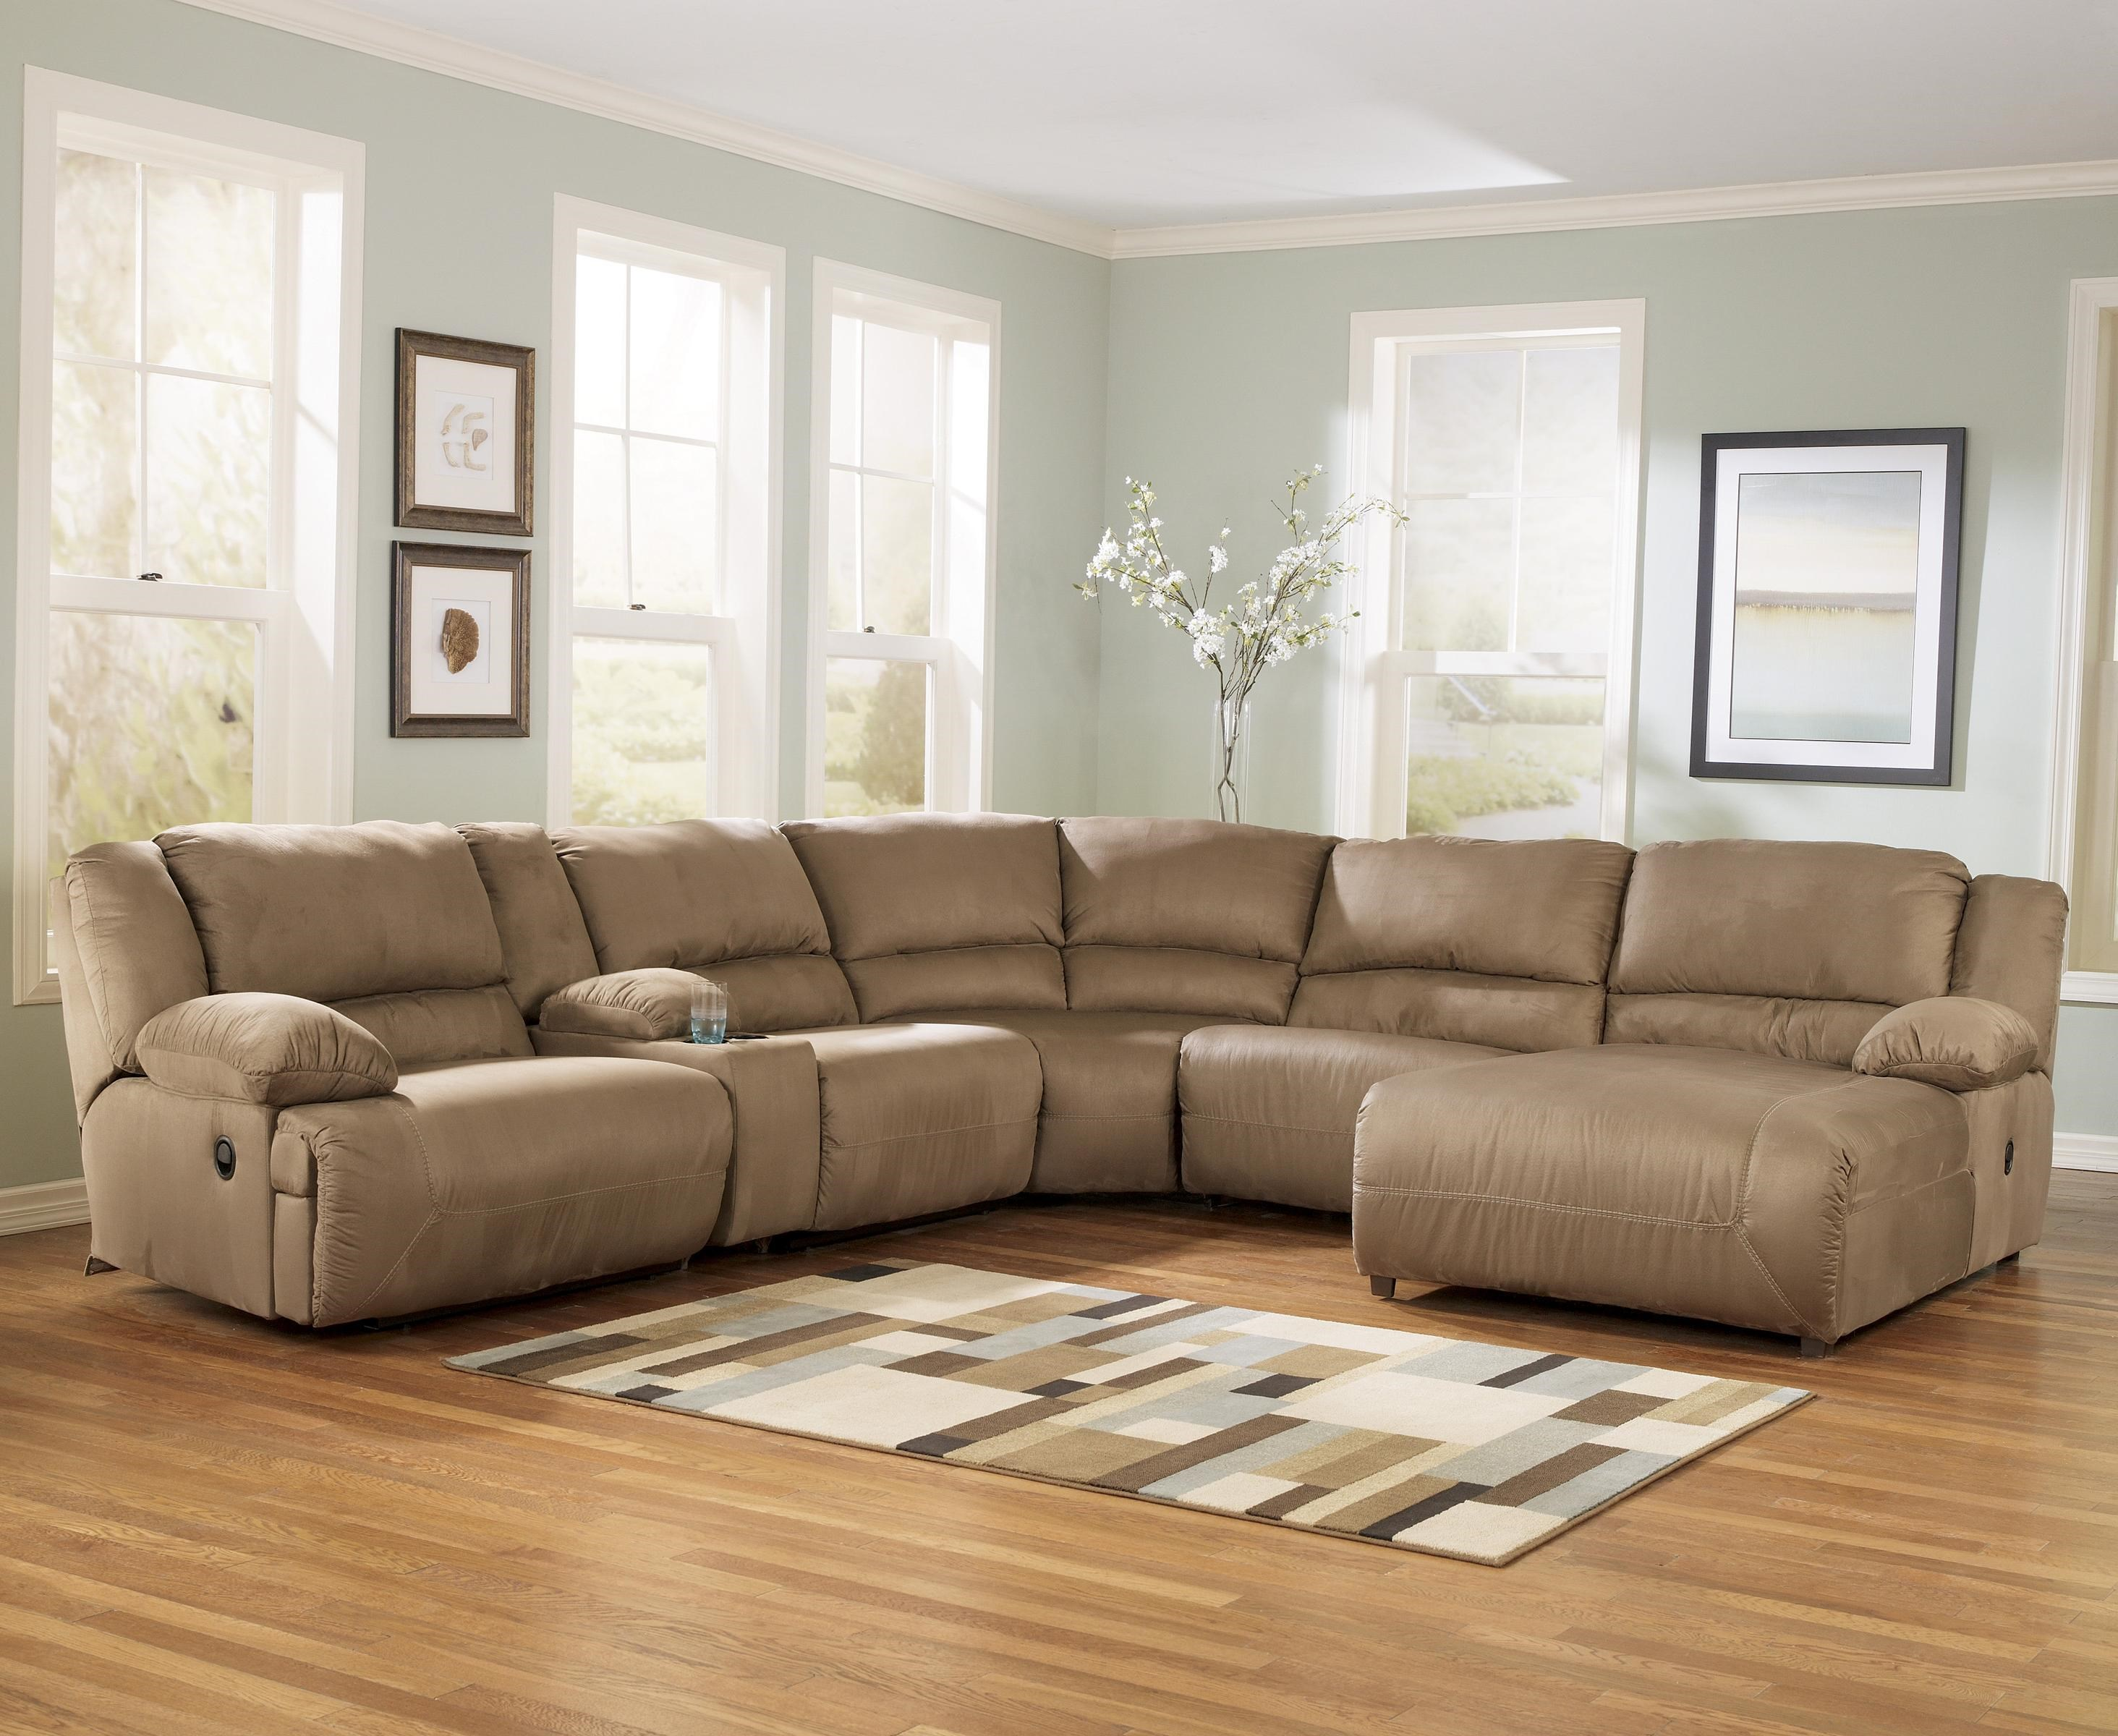 Exceptionnel Signature Design By Ashley Hogan   Mocha 6 Piece Motion Sectional With  Right Chaise And Console